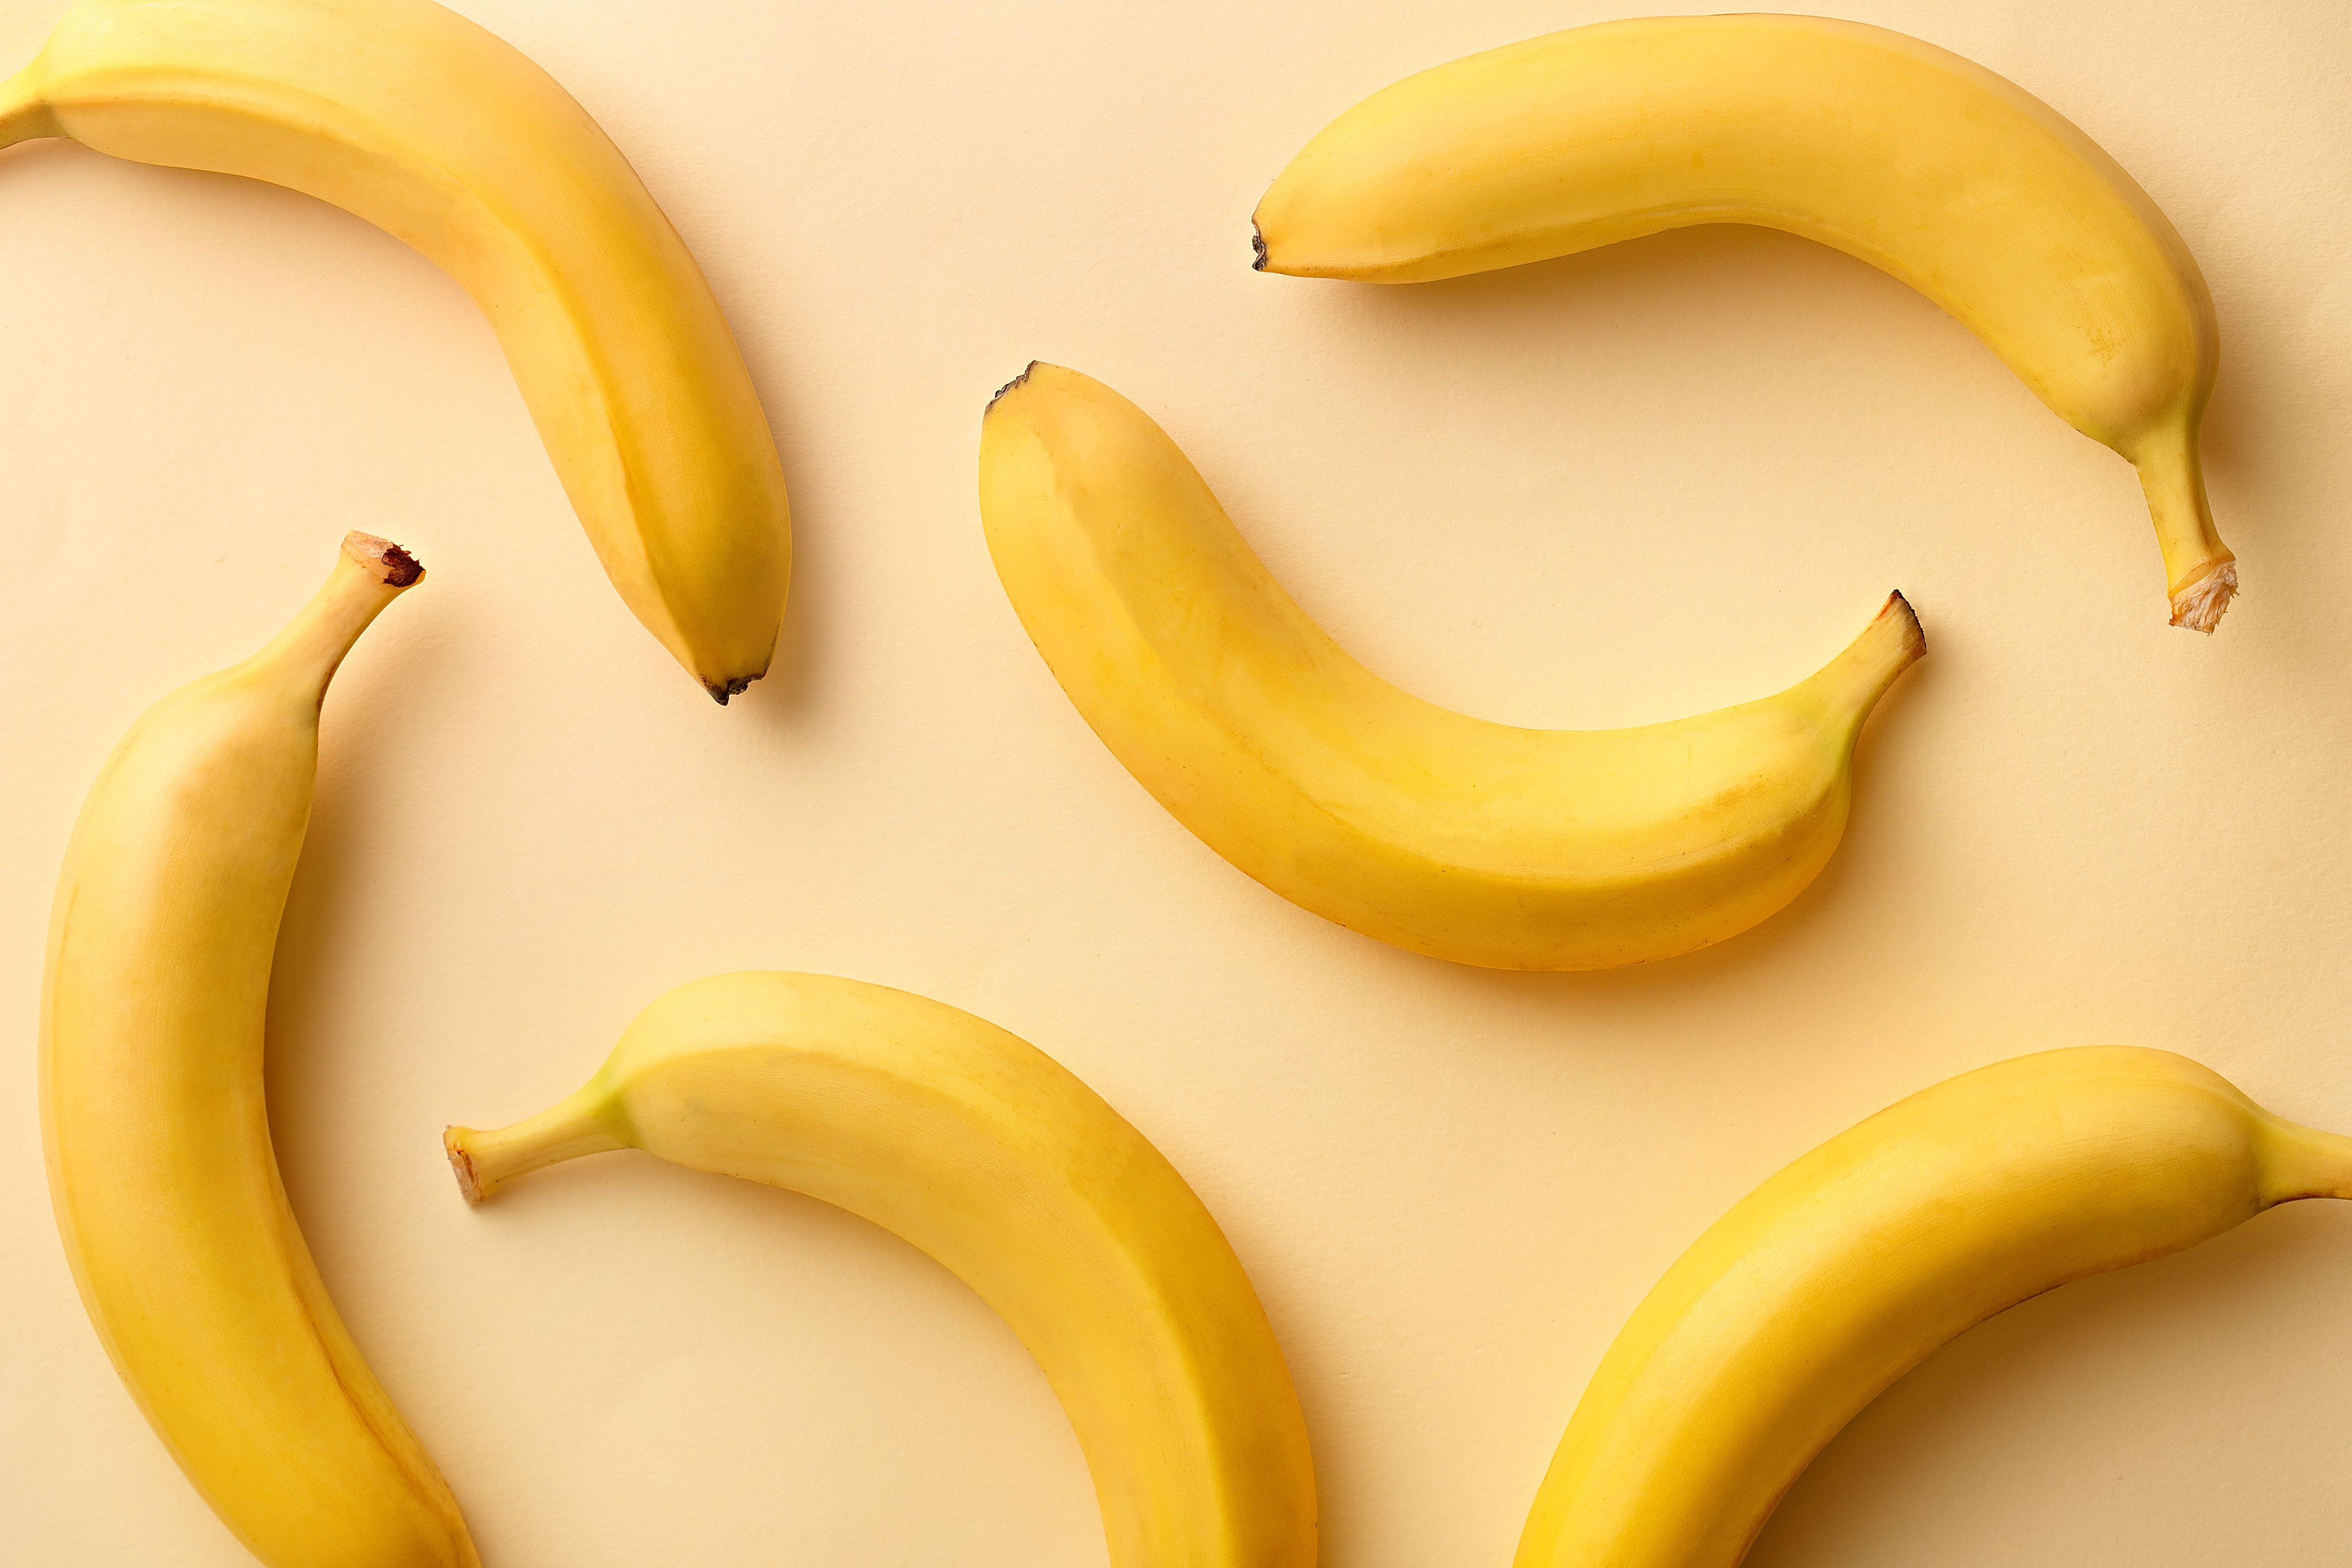 How to Use Up Ripe Bananas